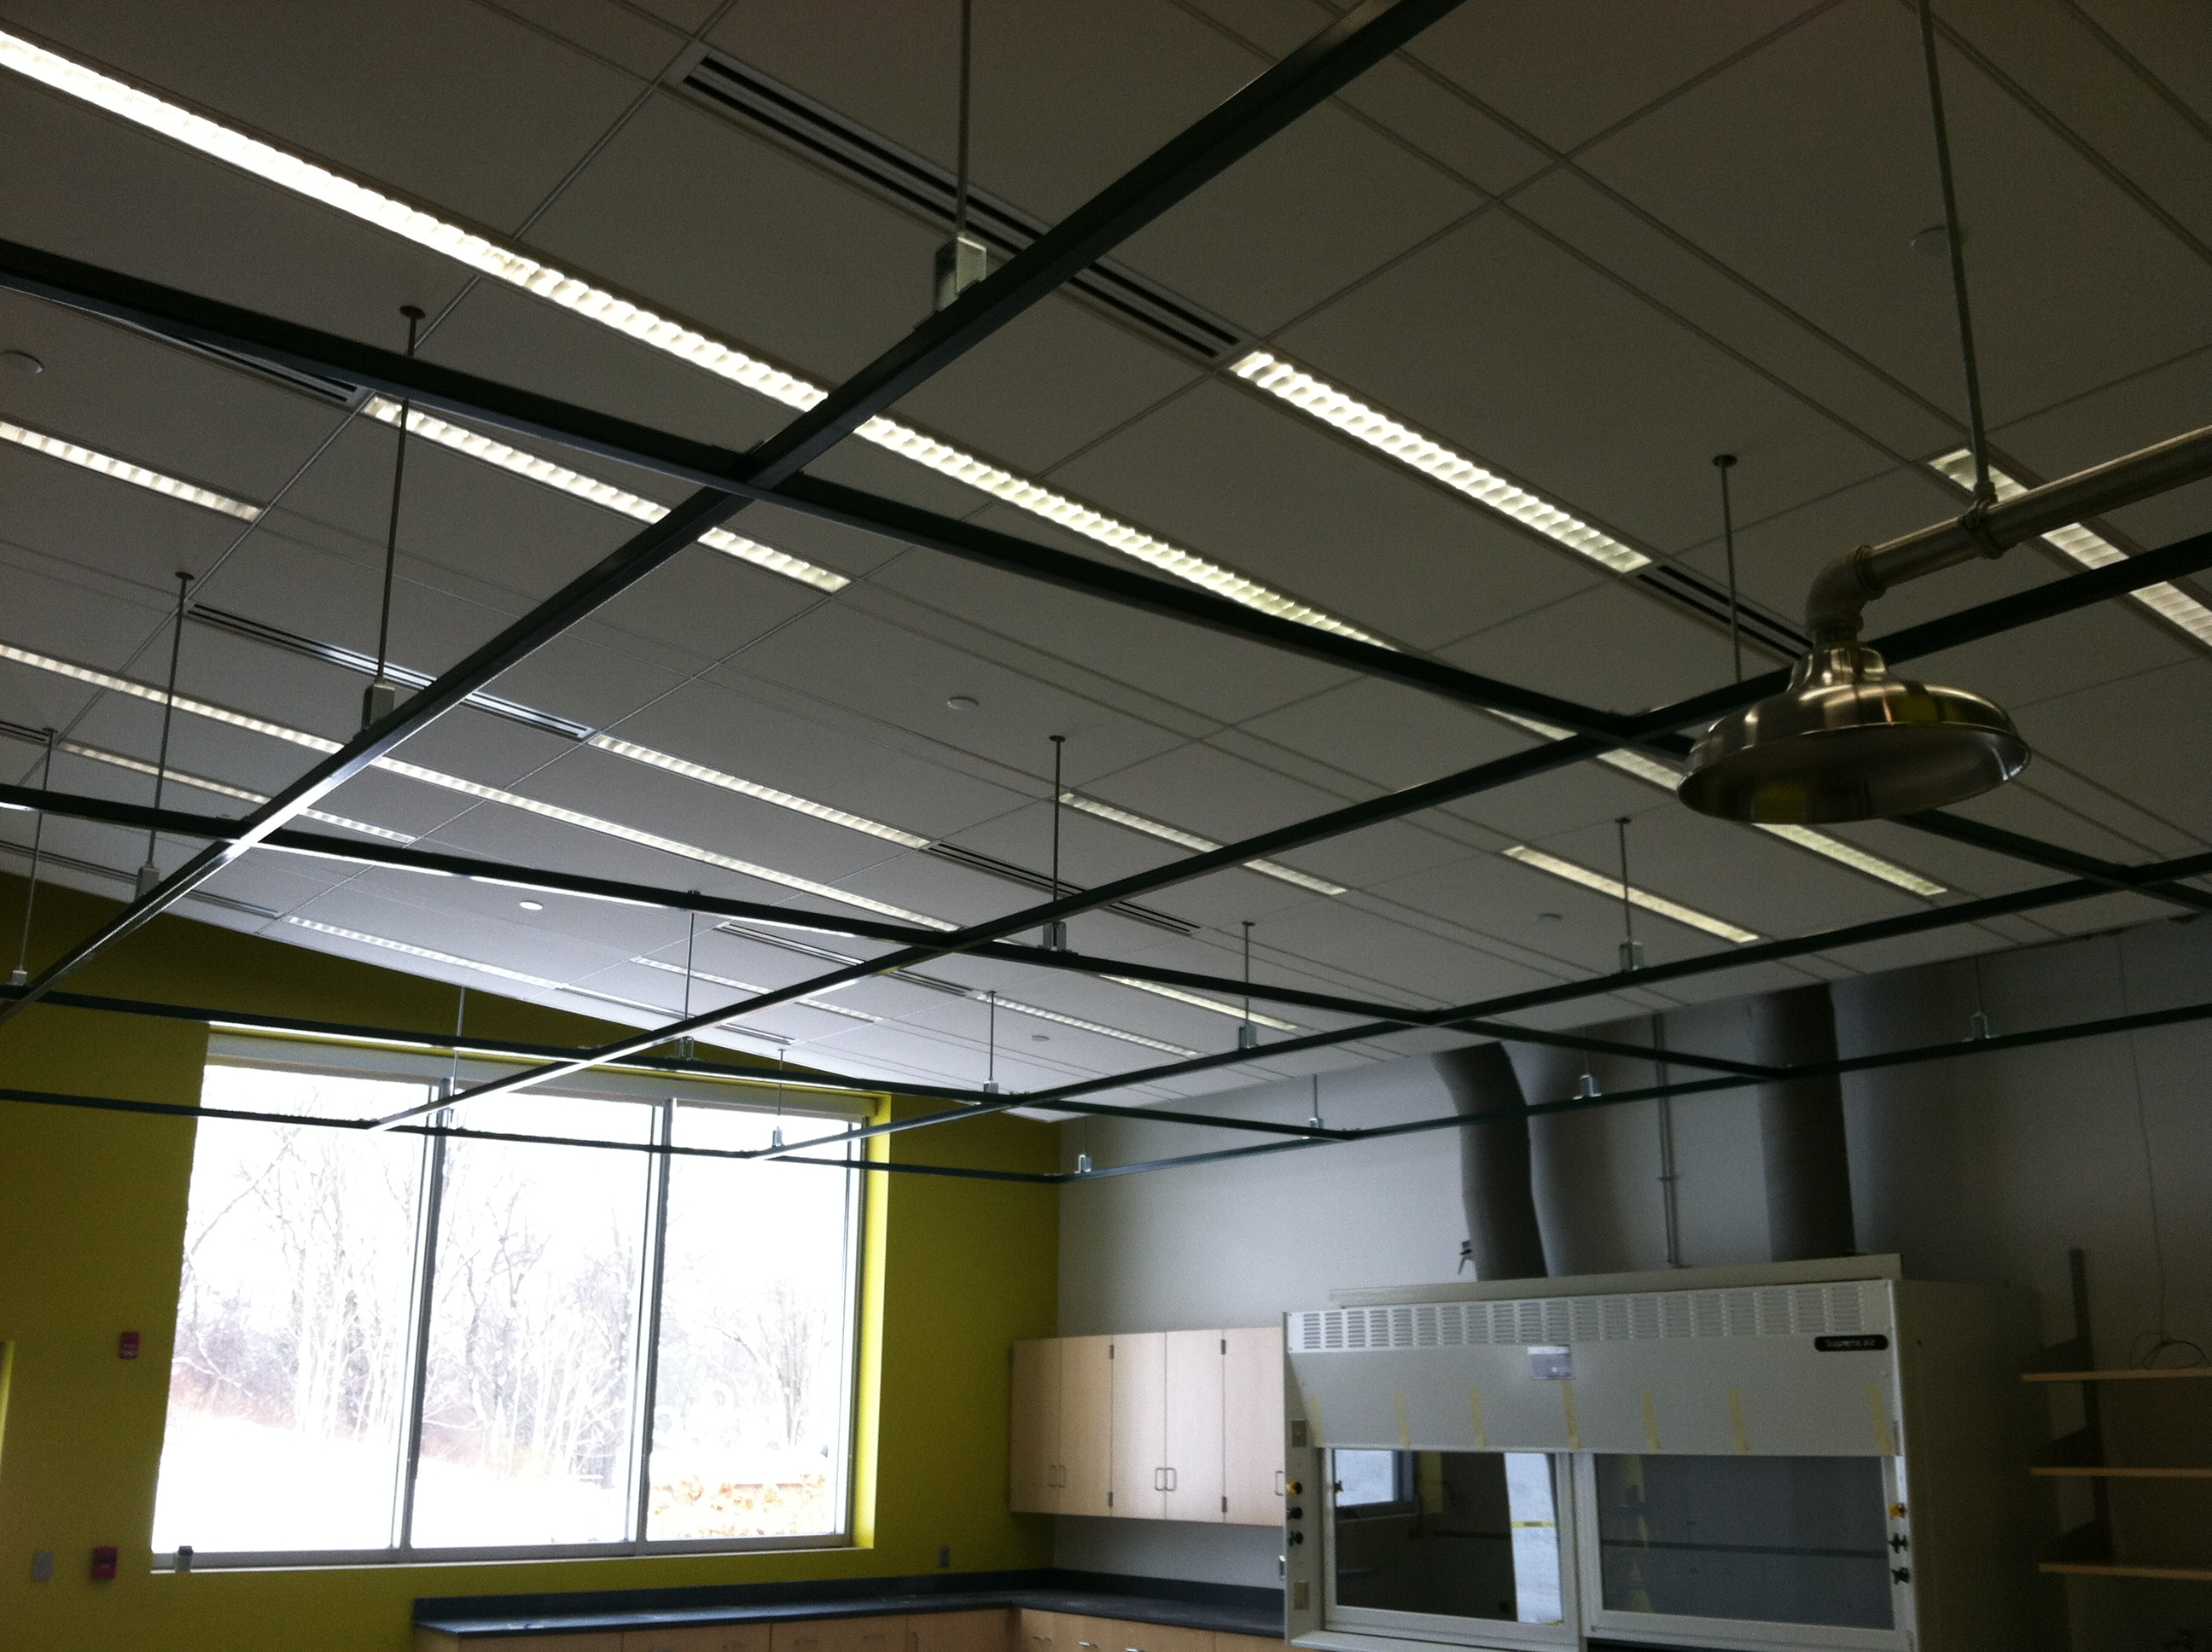 Reasons To Use Unistrut Ceiling Grids Unistrut Service Co